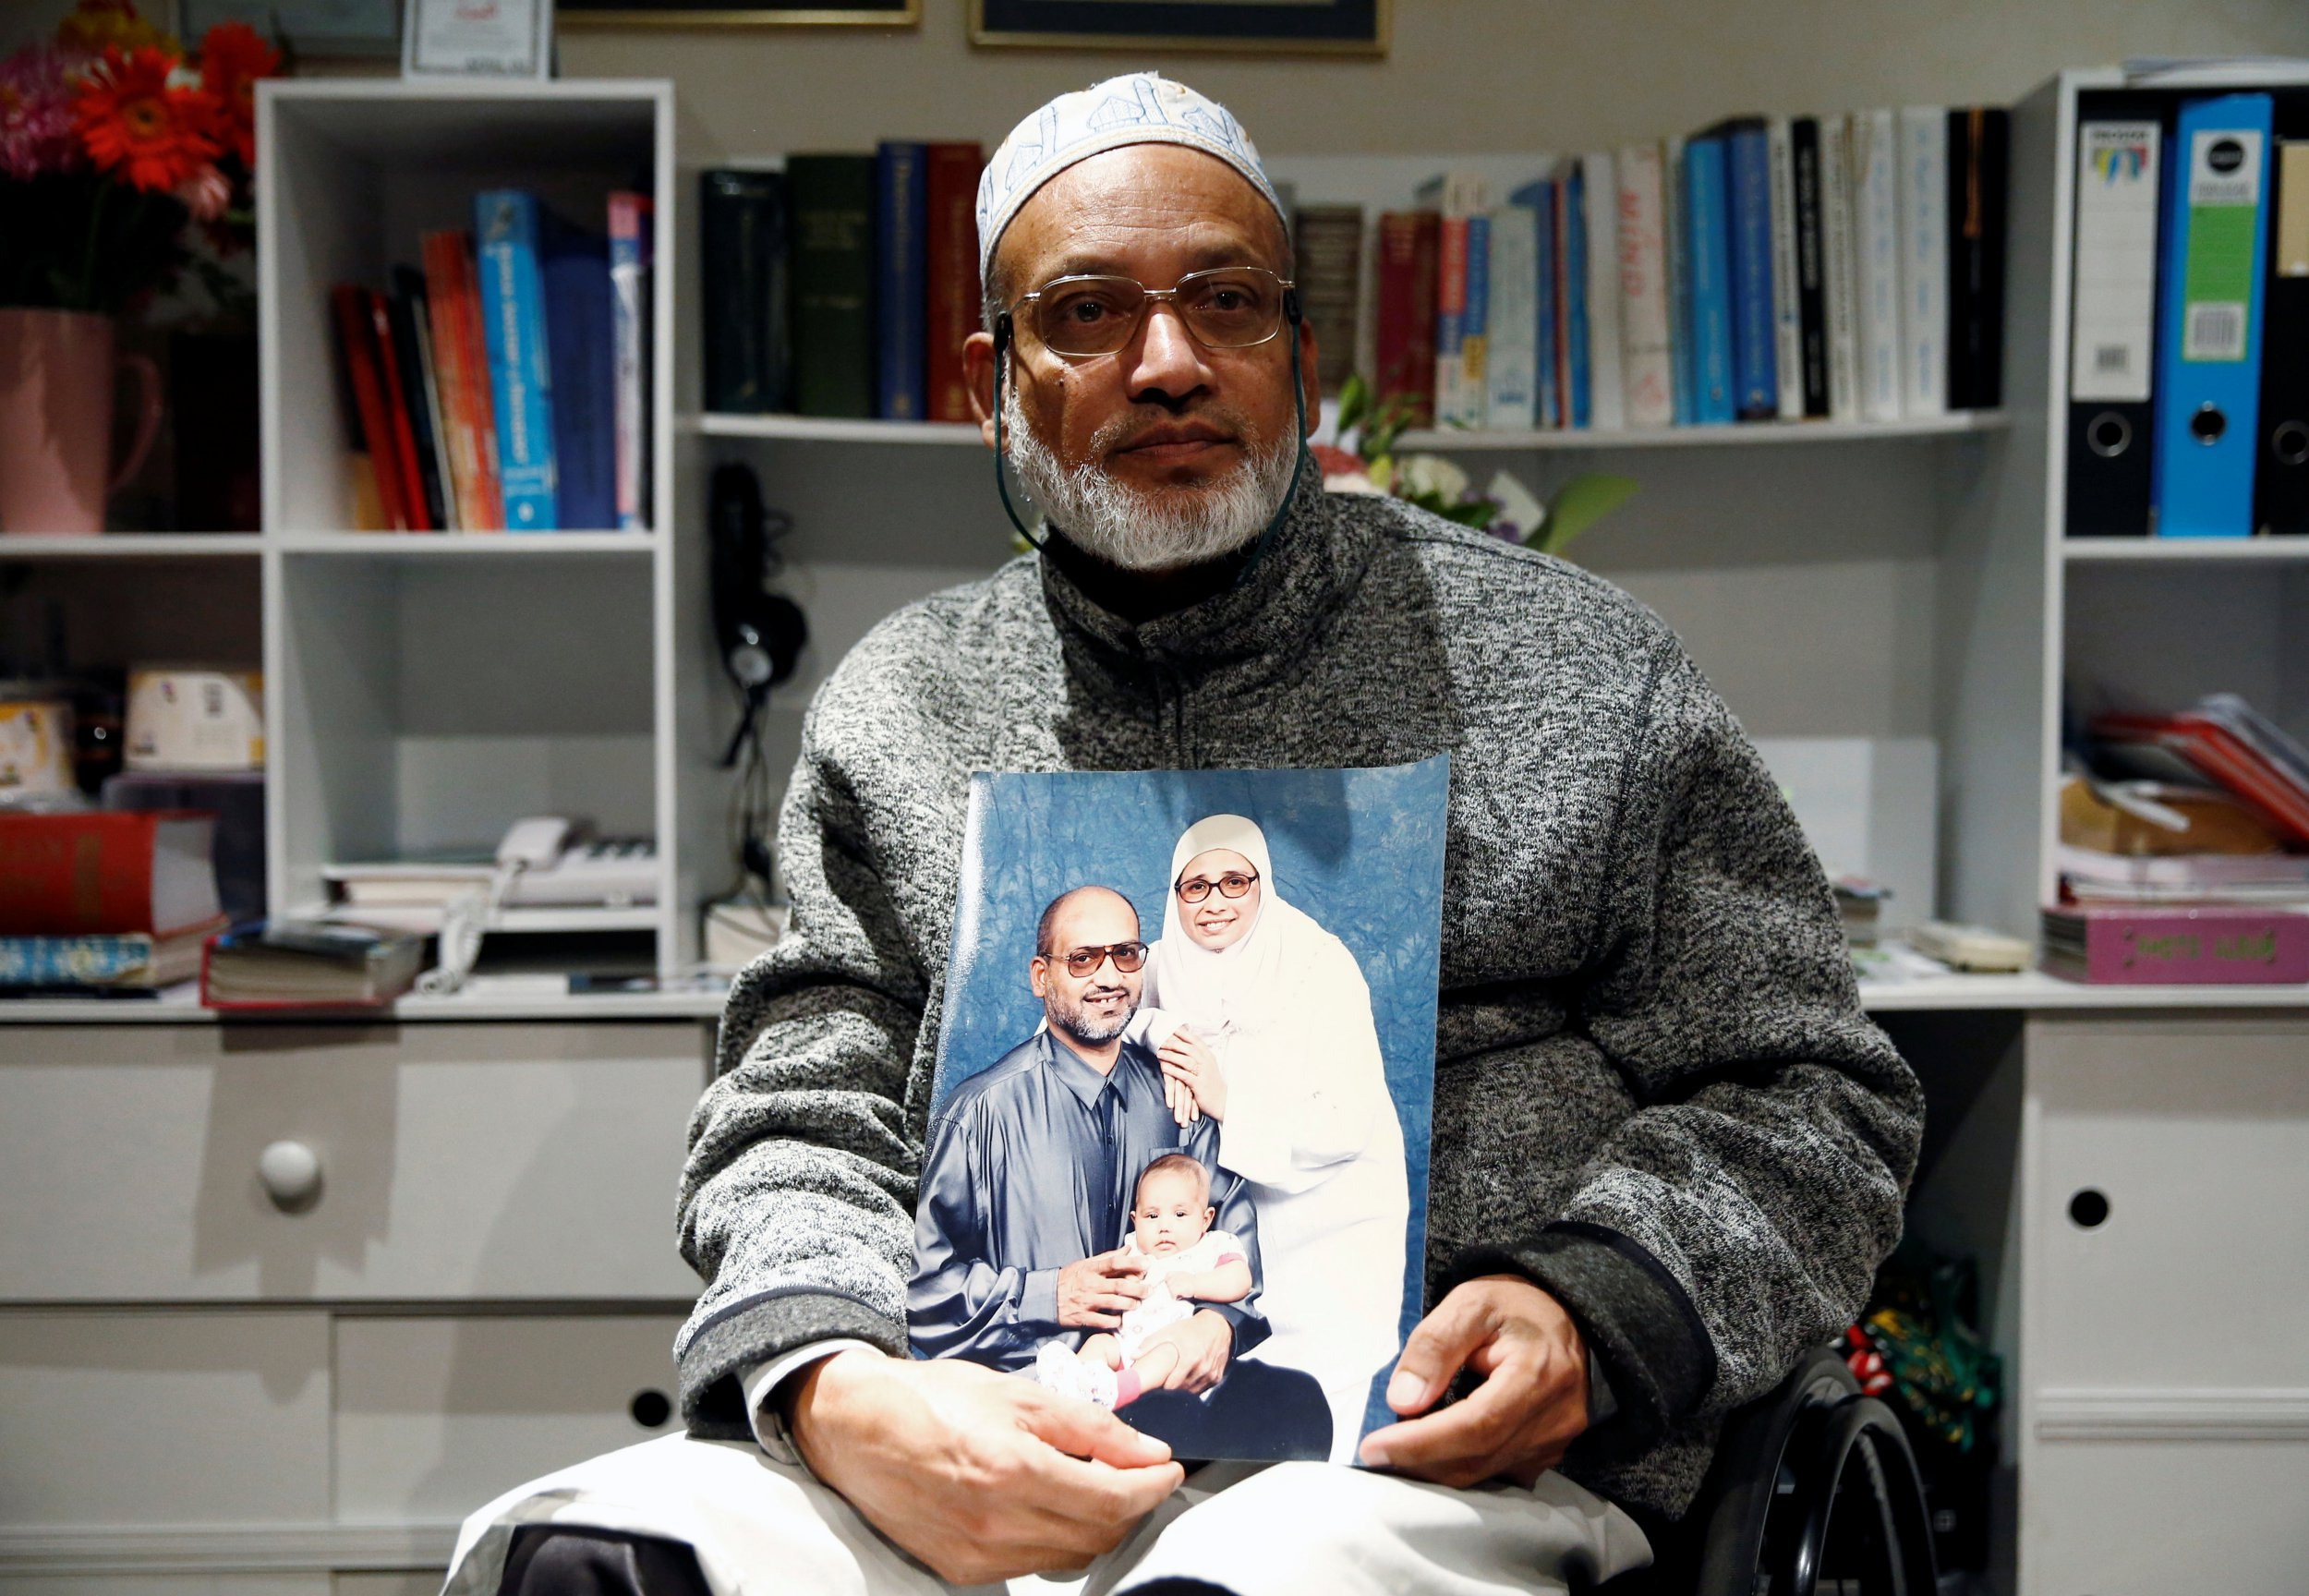 Extraordinary forgiveness of man whose wife was killed in New Zealand mosque terror attack